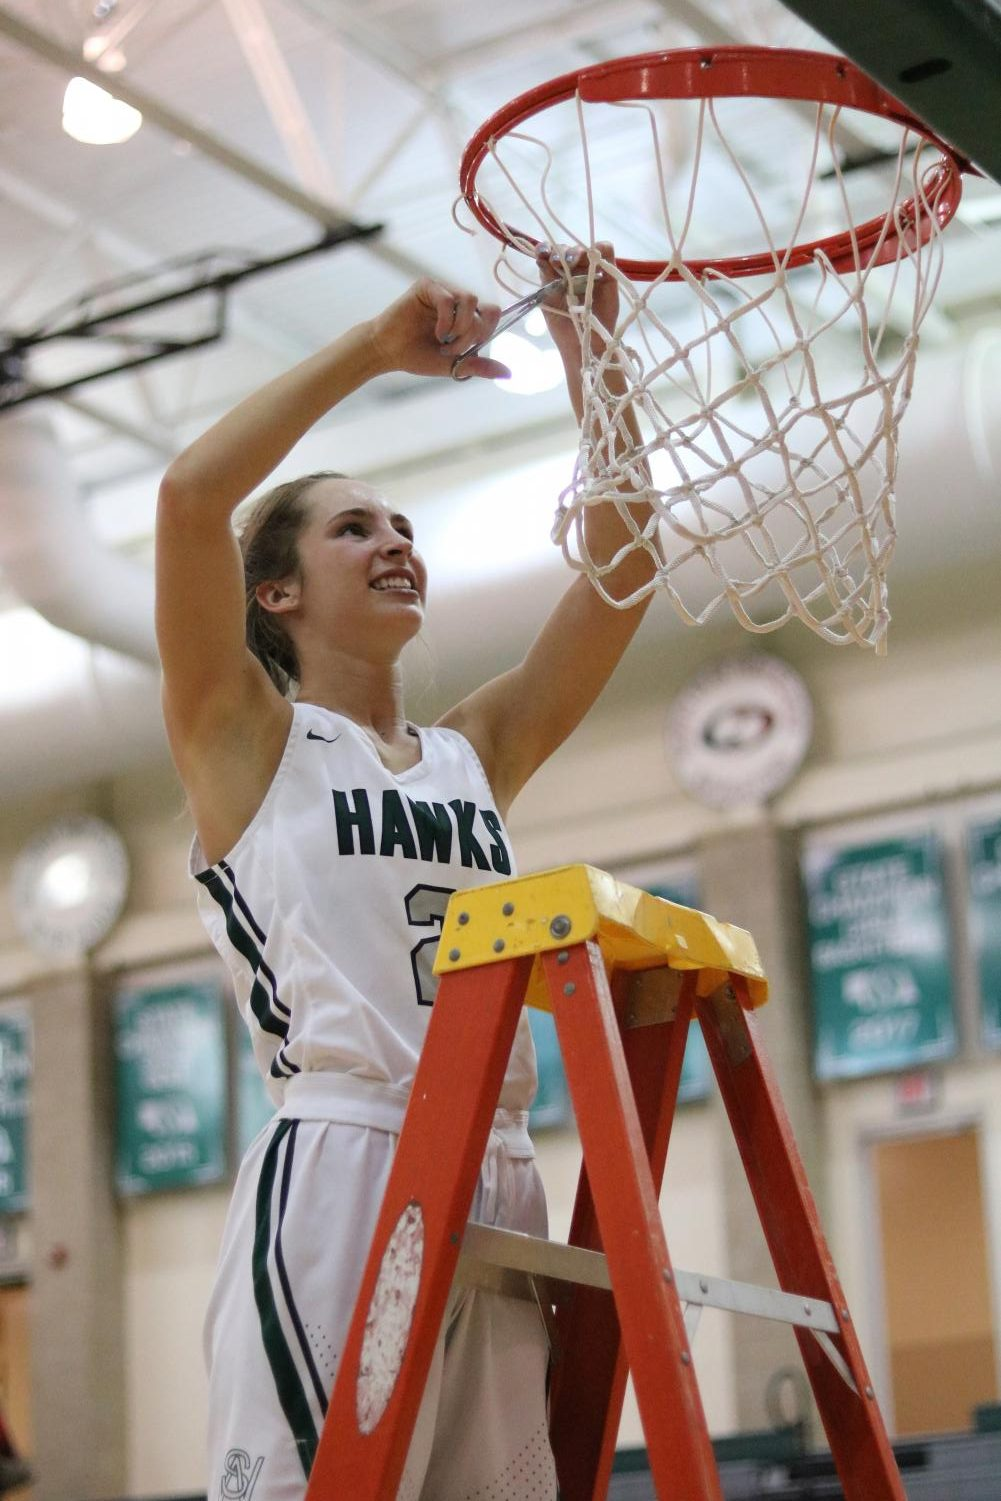 Senior guard Emma Kauf cuts down the net after Southwest's 45-20 victory over Southeast last Friday. The Hawks will play Omaha Westside on Friday at Pinnacle Bank Arena. Tip-off will be at 3:45 p.m.